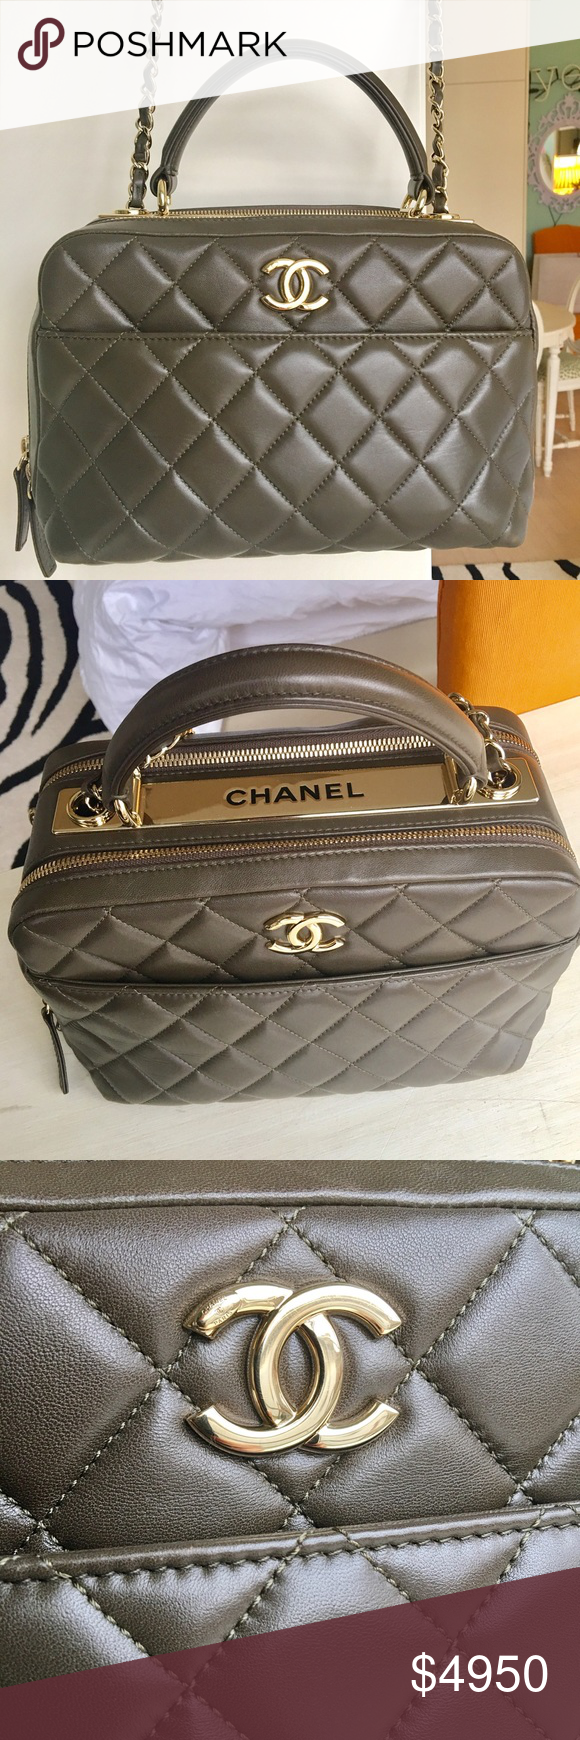 a91632b1fbe9 2016 Fall Chanel Trendy CC Small Bowling Bag 100% Authentic! Worn a couple  of